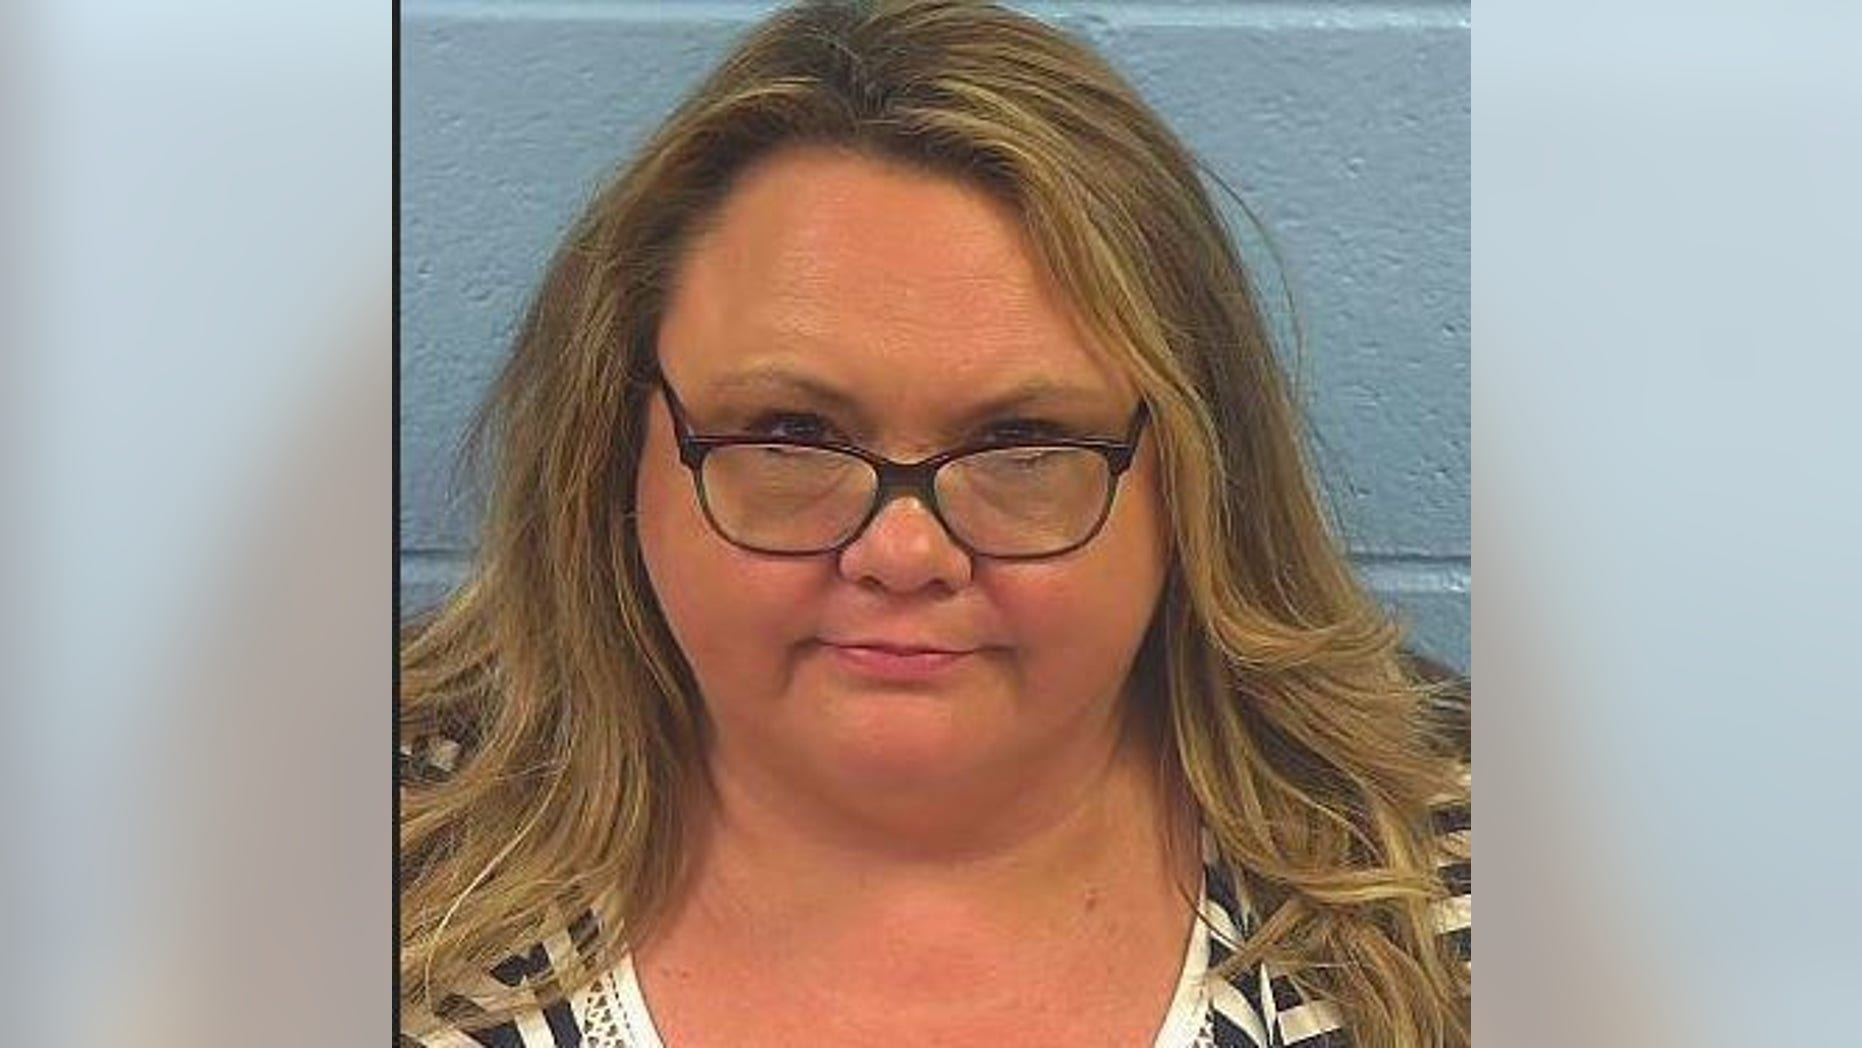 Sonya Ann Wilks Bailey, 51, has been charged with three felonies for being sexually involved with a student in Alabama.